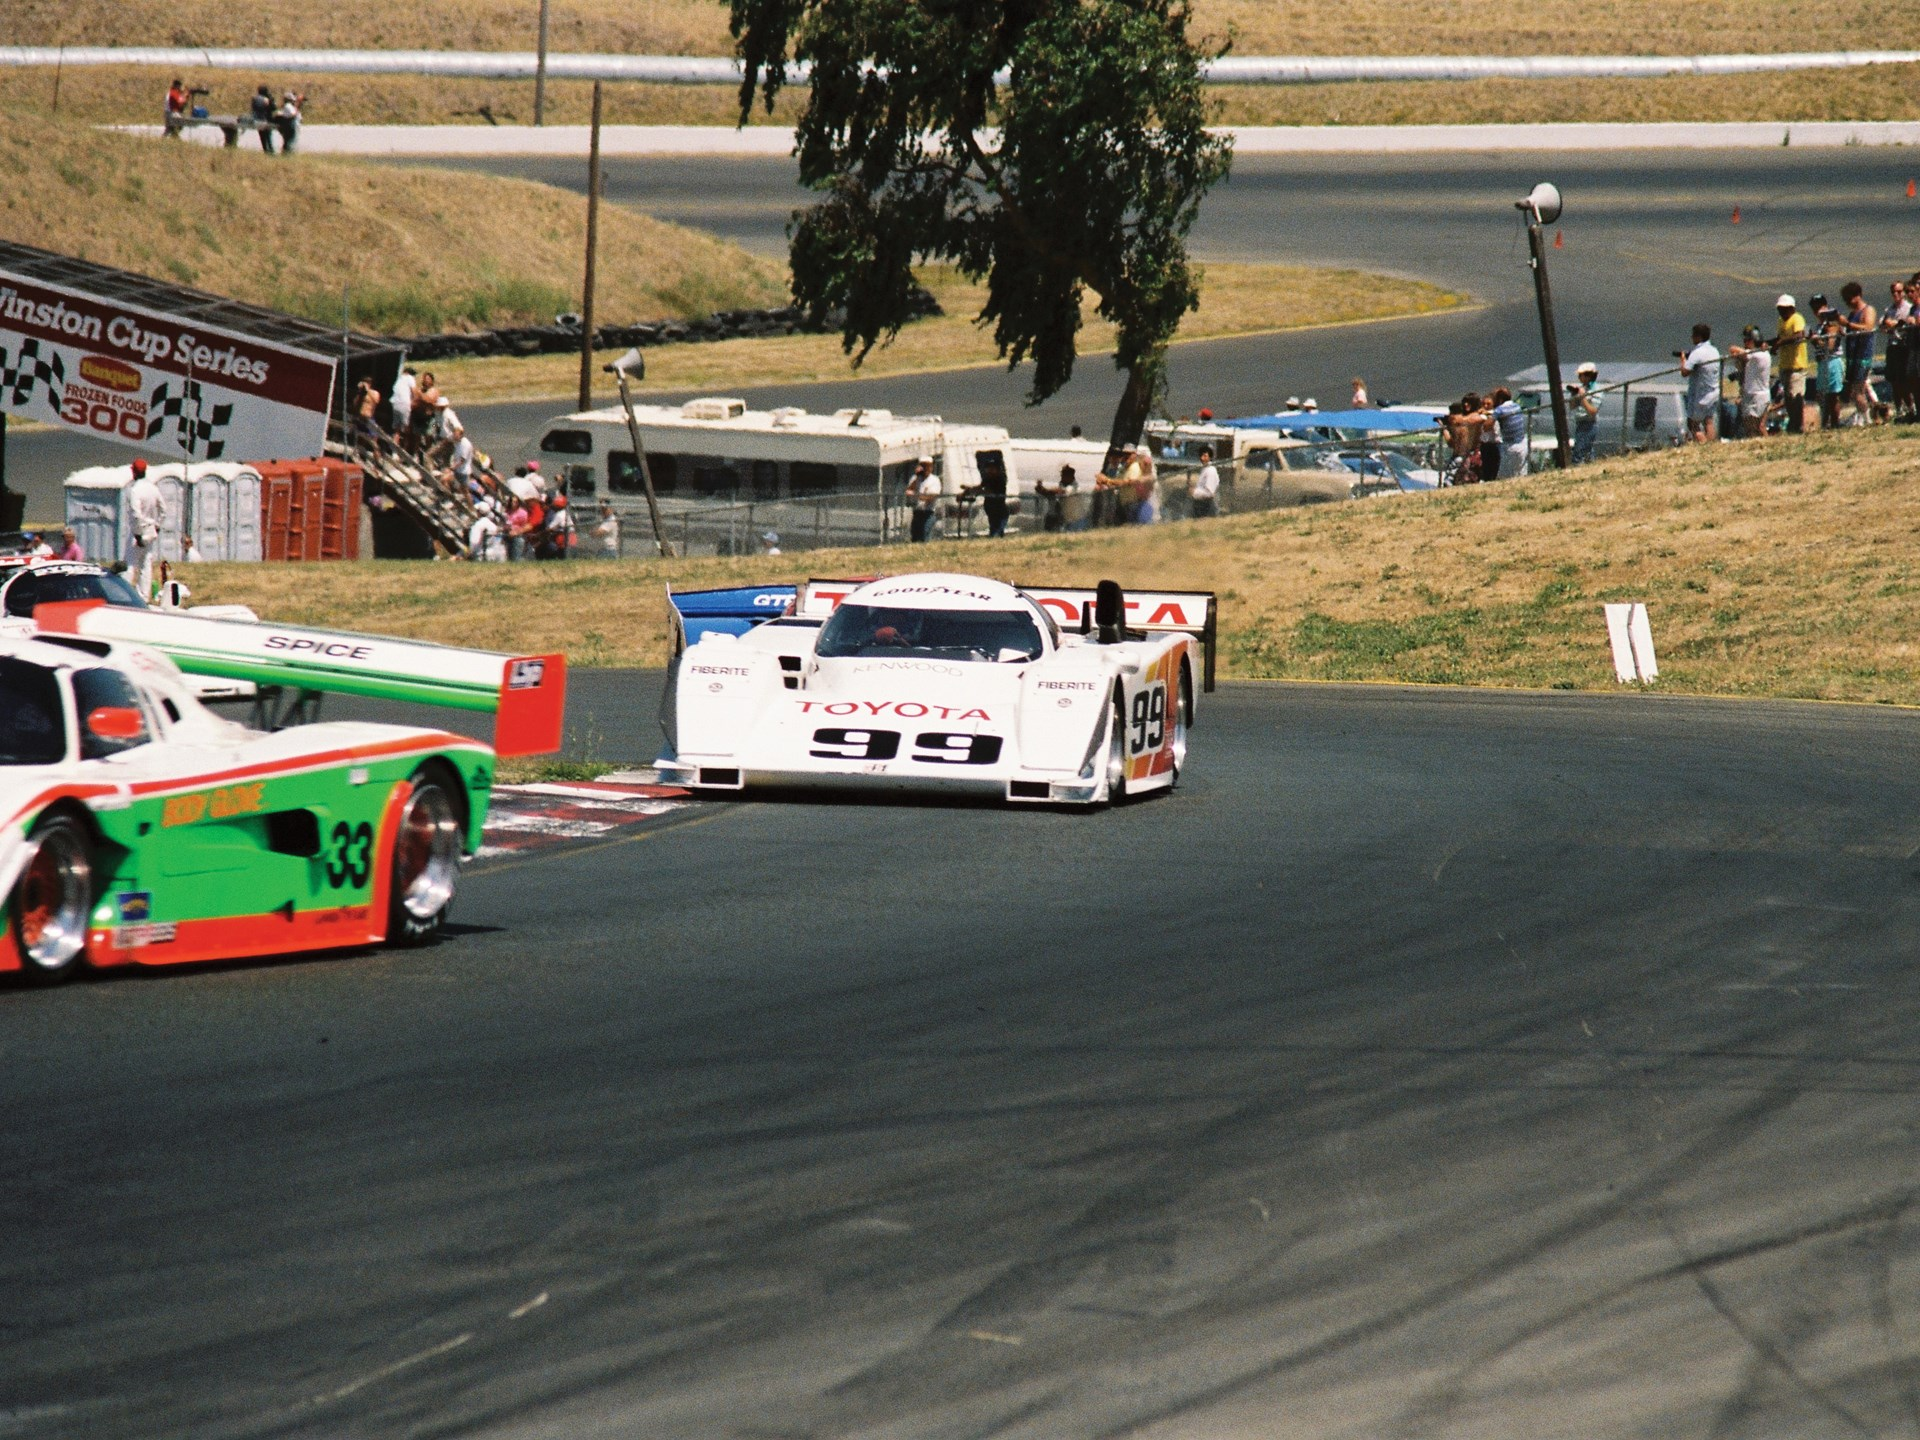 The #99 AAR-Toyota Eagle HF89 driven by Juan Fangio II, California Camel GP, Sears Point Raceway, July 15, 1990.